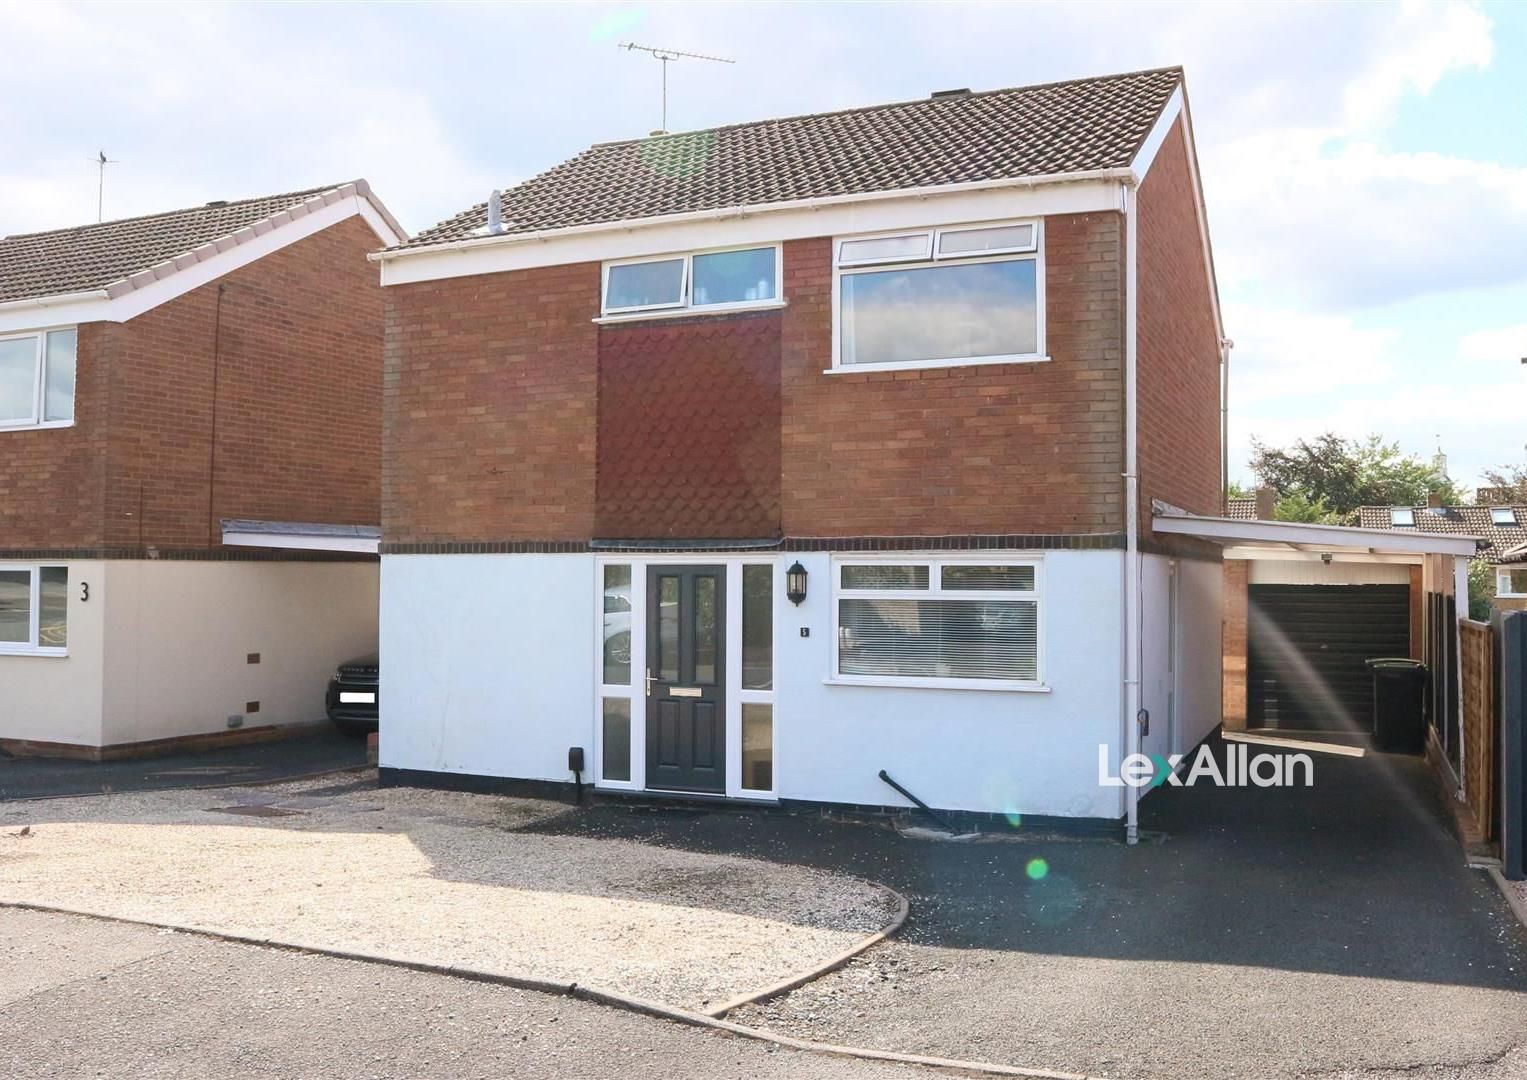 3 bed detached for sale, DY8